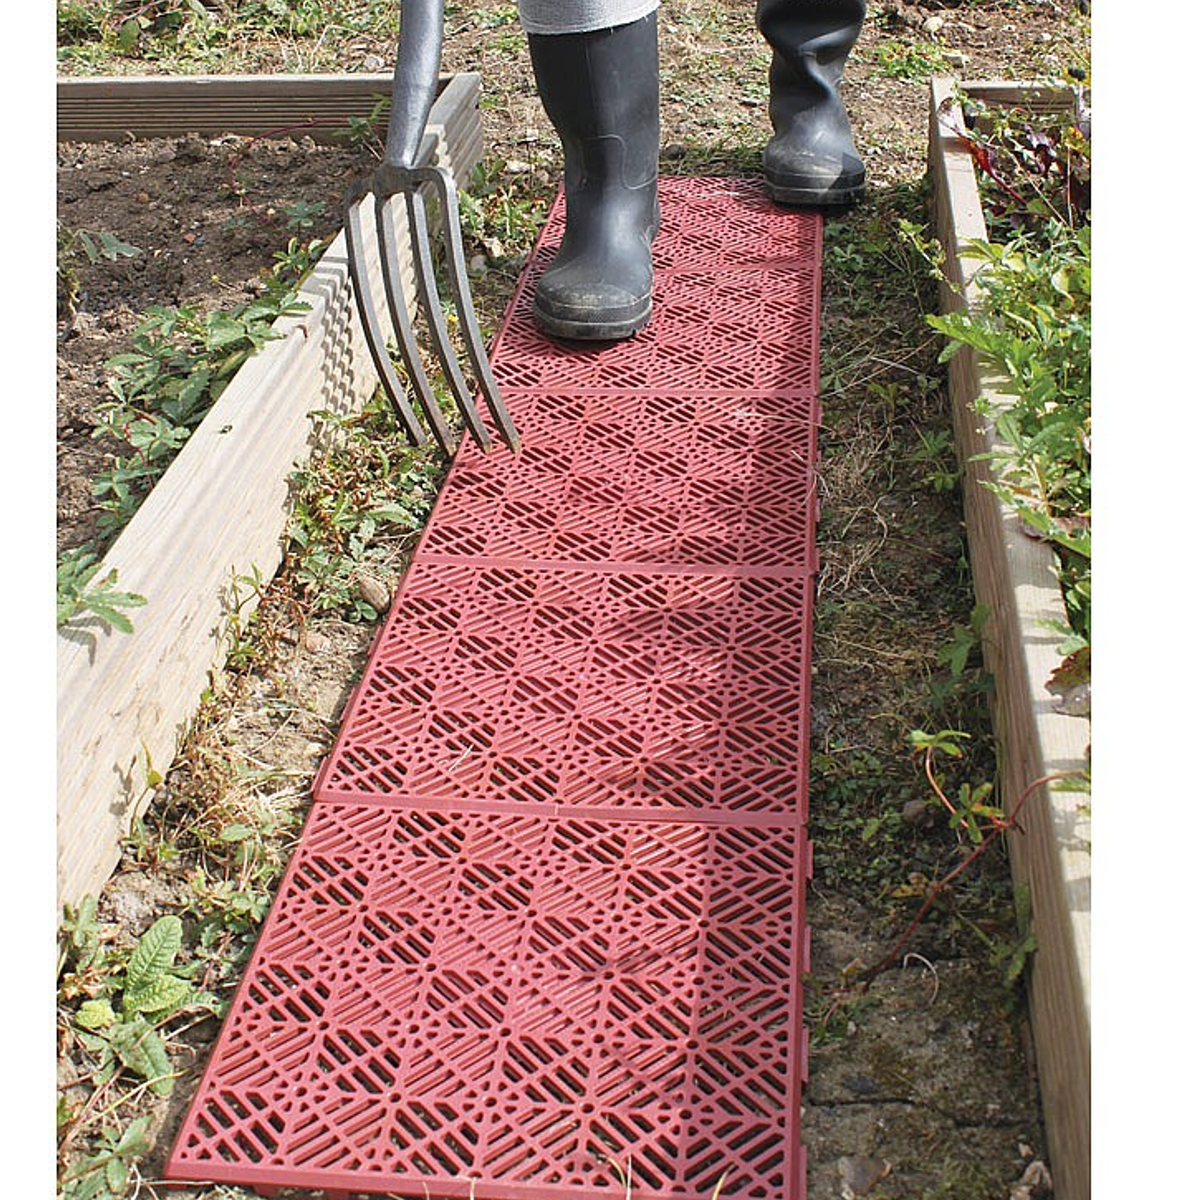 Interlocking non slip garden lawn path plastic tiles for Garden decking non slip